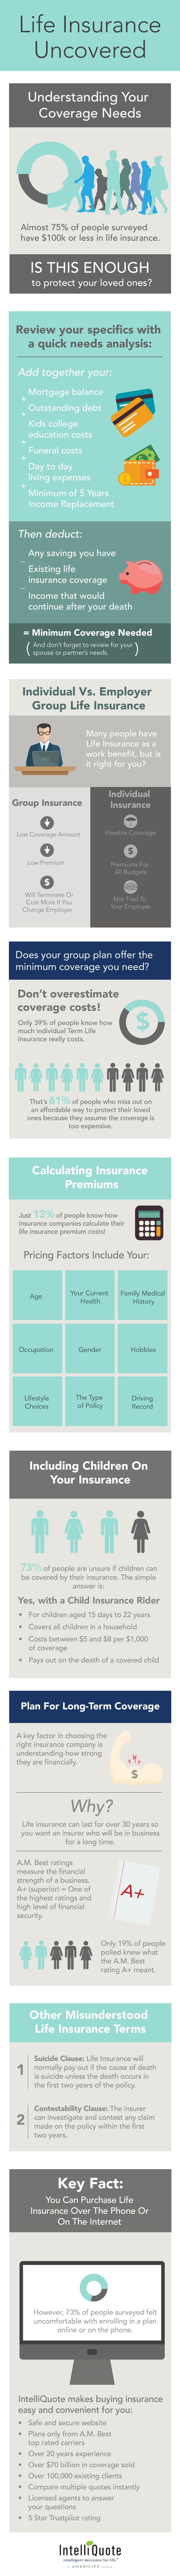 Life Insurance Uncovered